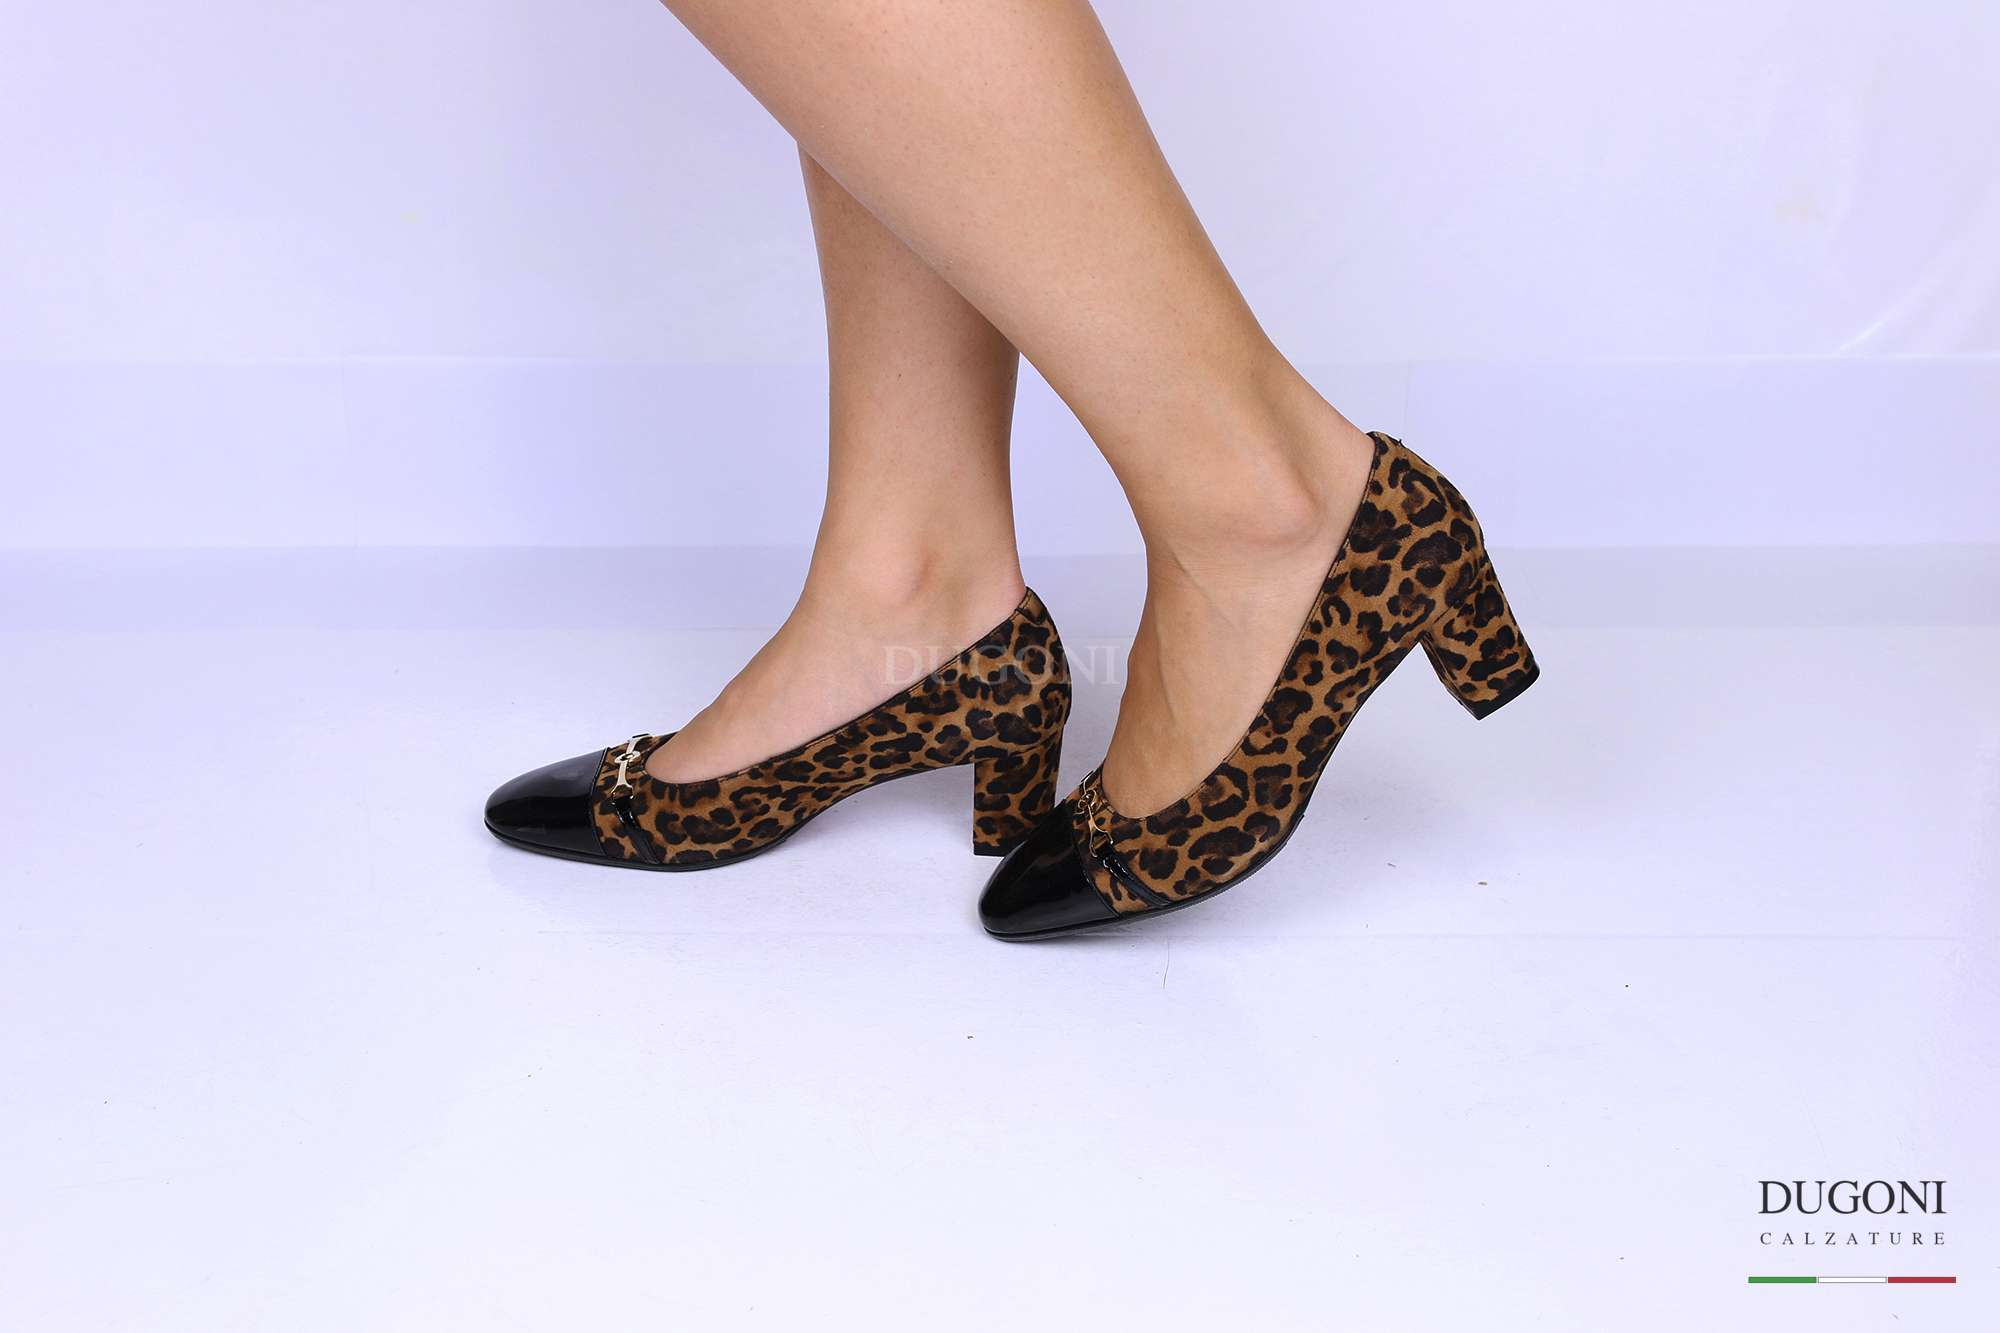 Décolleté leopardato con morsetto </br> D1204 Outlet